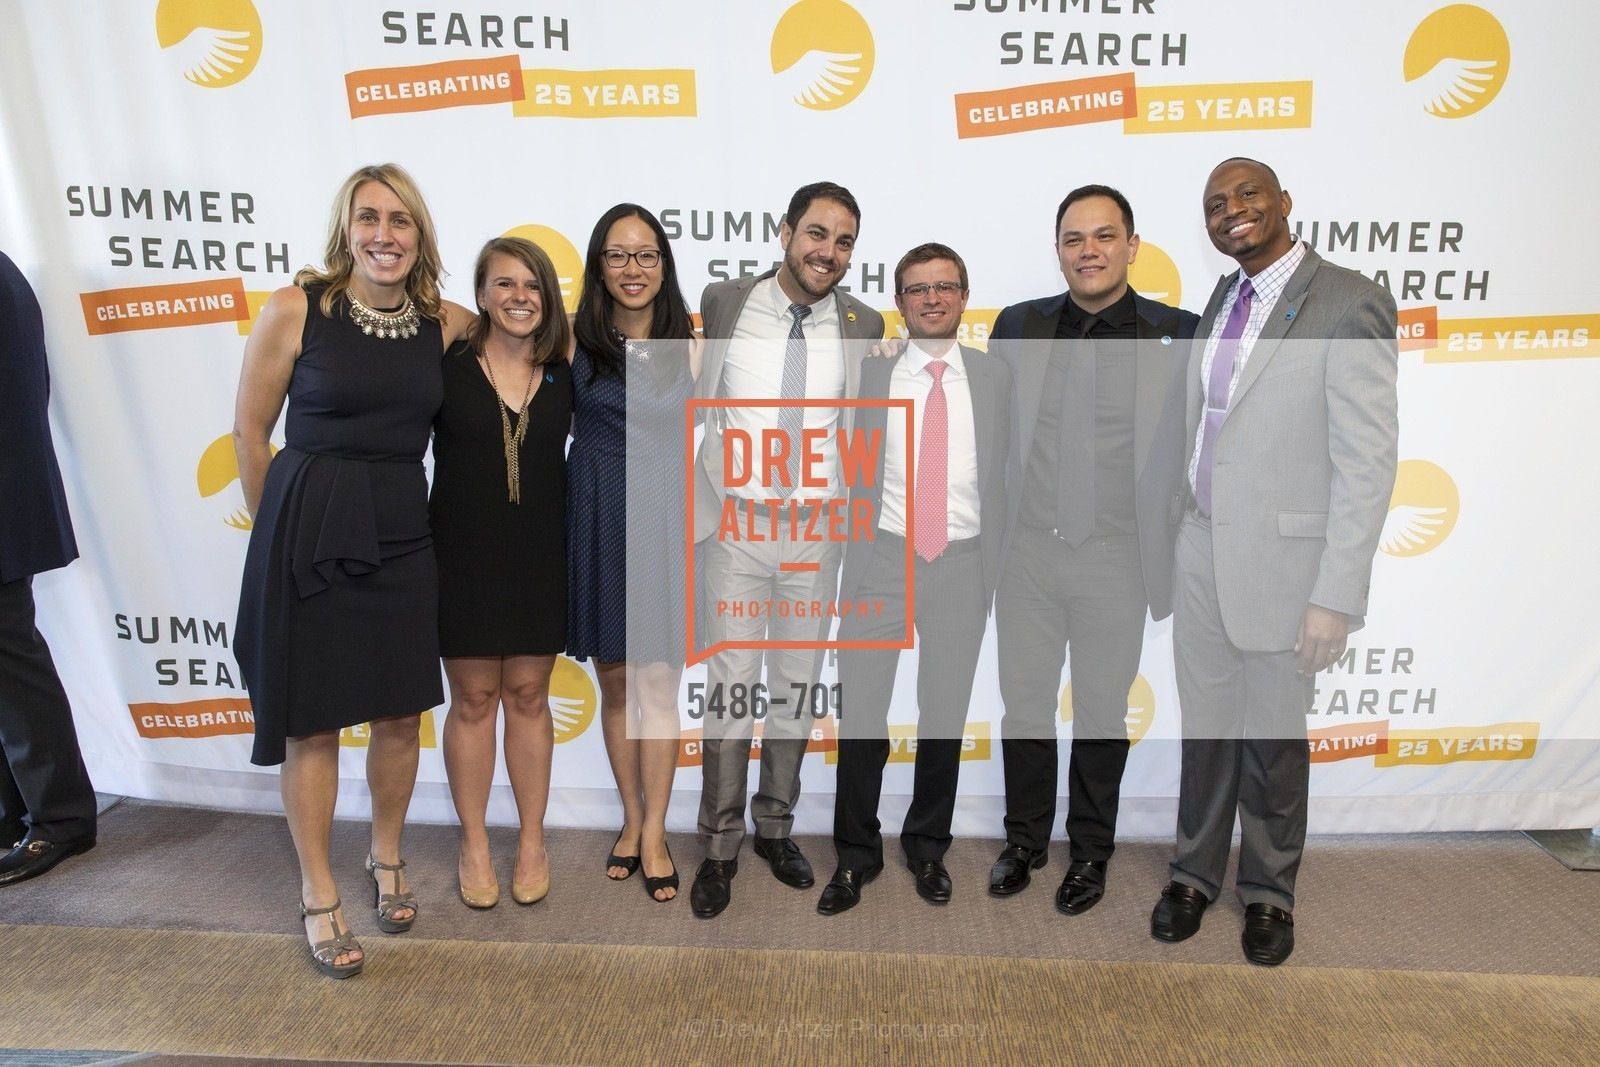 Katherine Kennedy, Alex Petek, Shirley Duong, Seth Ellis, Sasha Kovriga, Carlton Colbert, SUMMER SEARCH San Francisco 25th Anniversary, US, May 6th, 2015,Drew Altizer, Drew Altizer Photography, full-service agency, private events, San Francisco photographer, photographer california